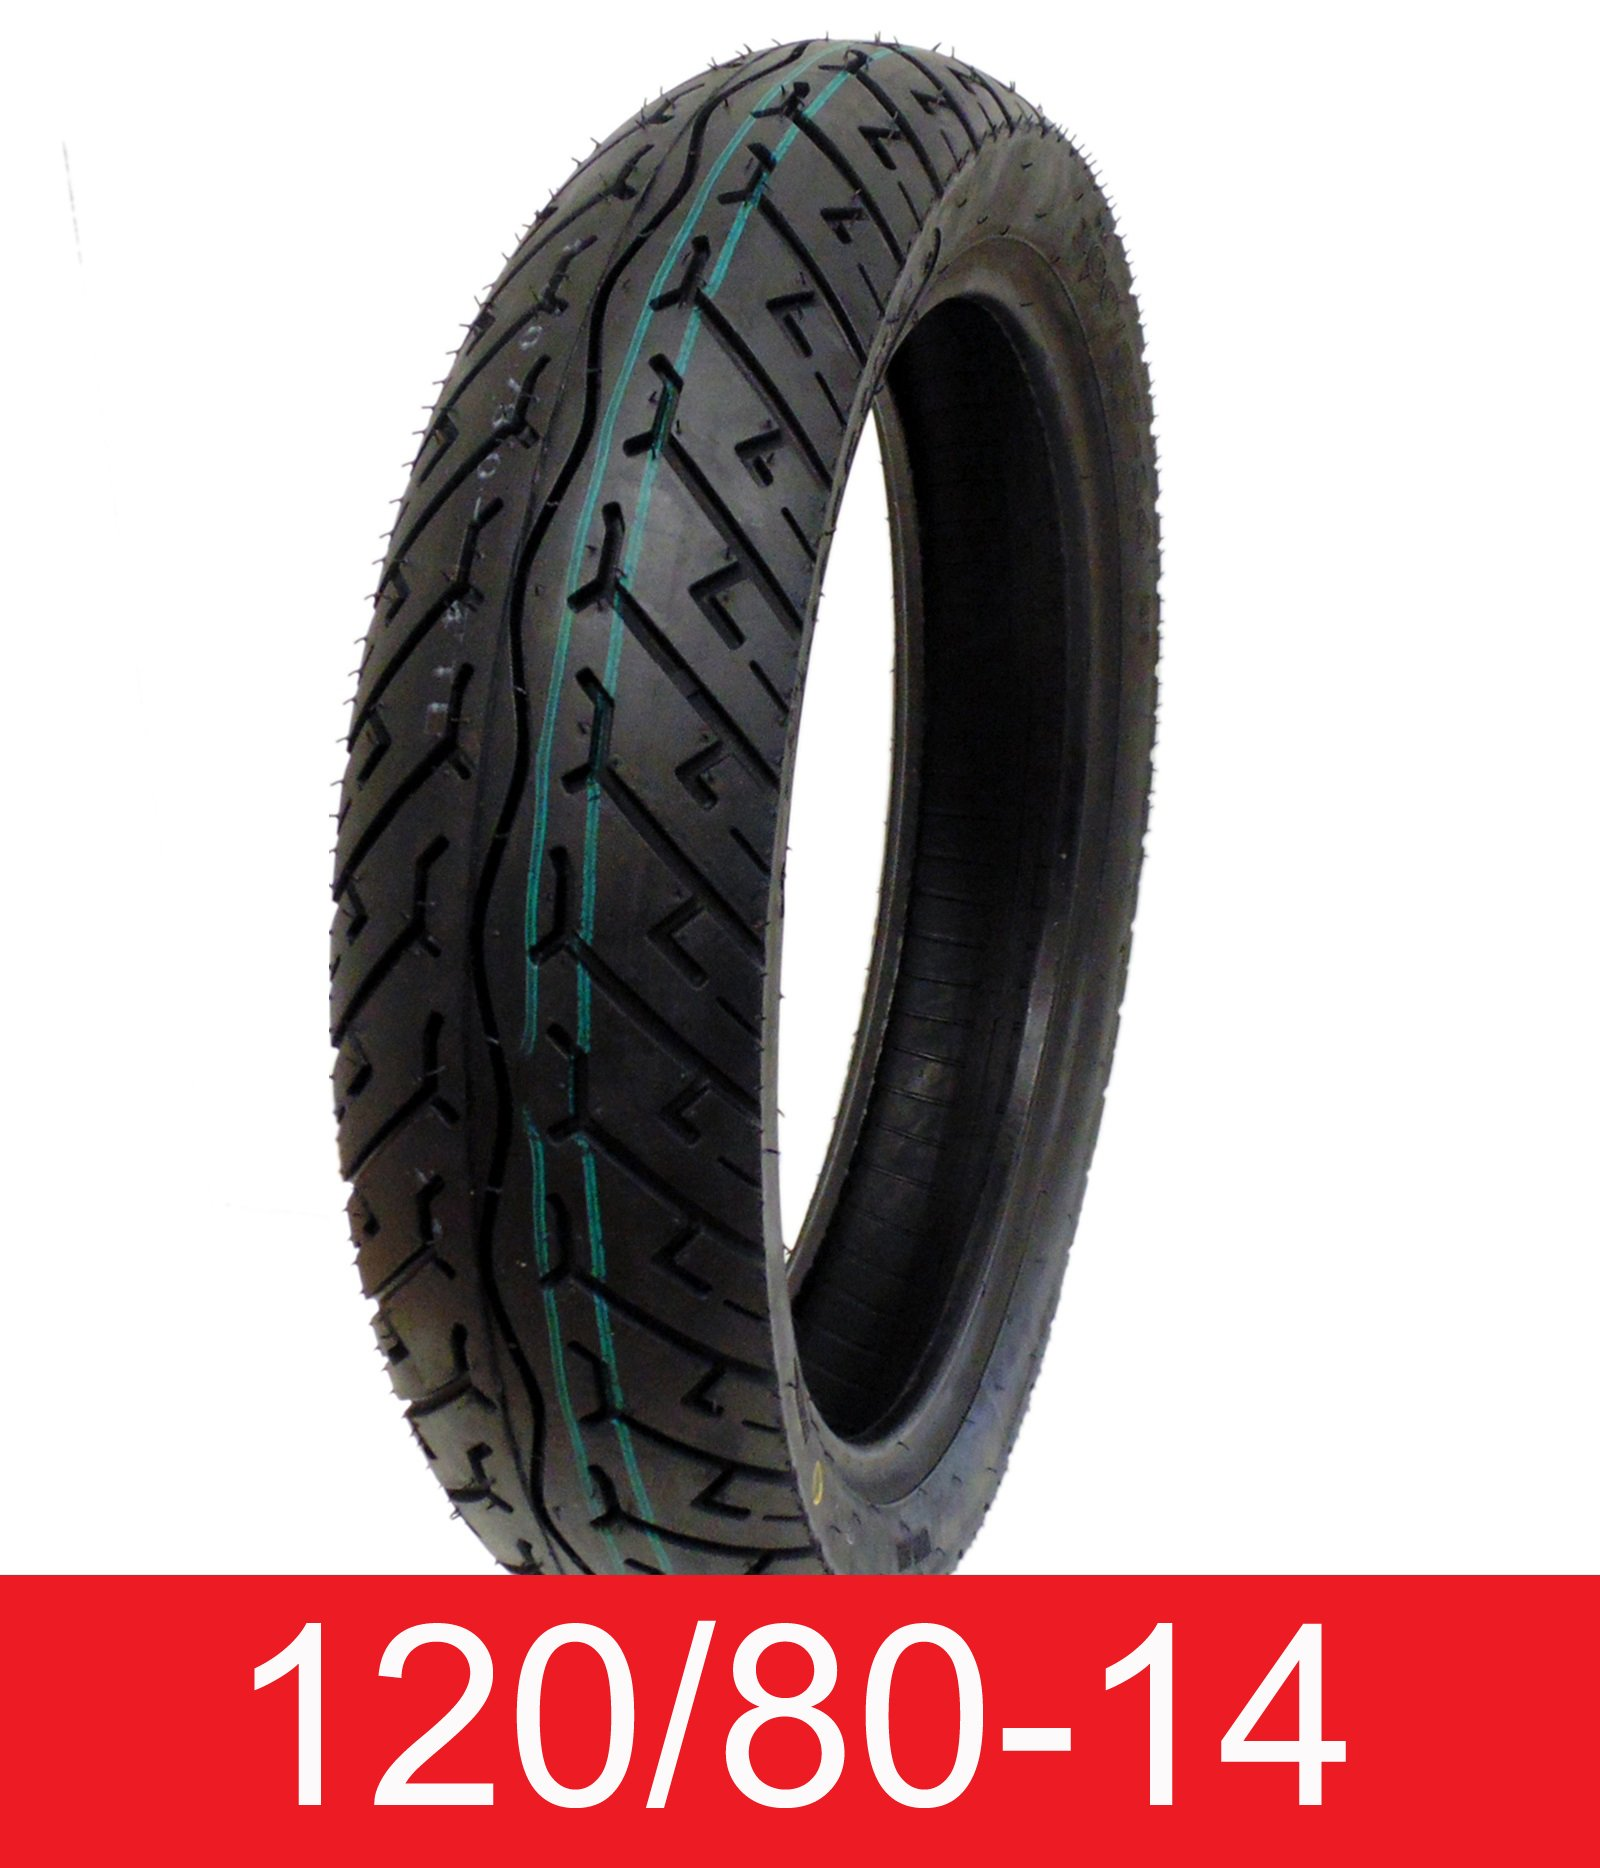 Tire 120/80-14 Tubeless Front/Rear Motorcycle Scooter Moped